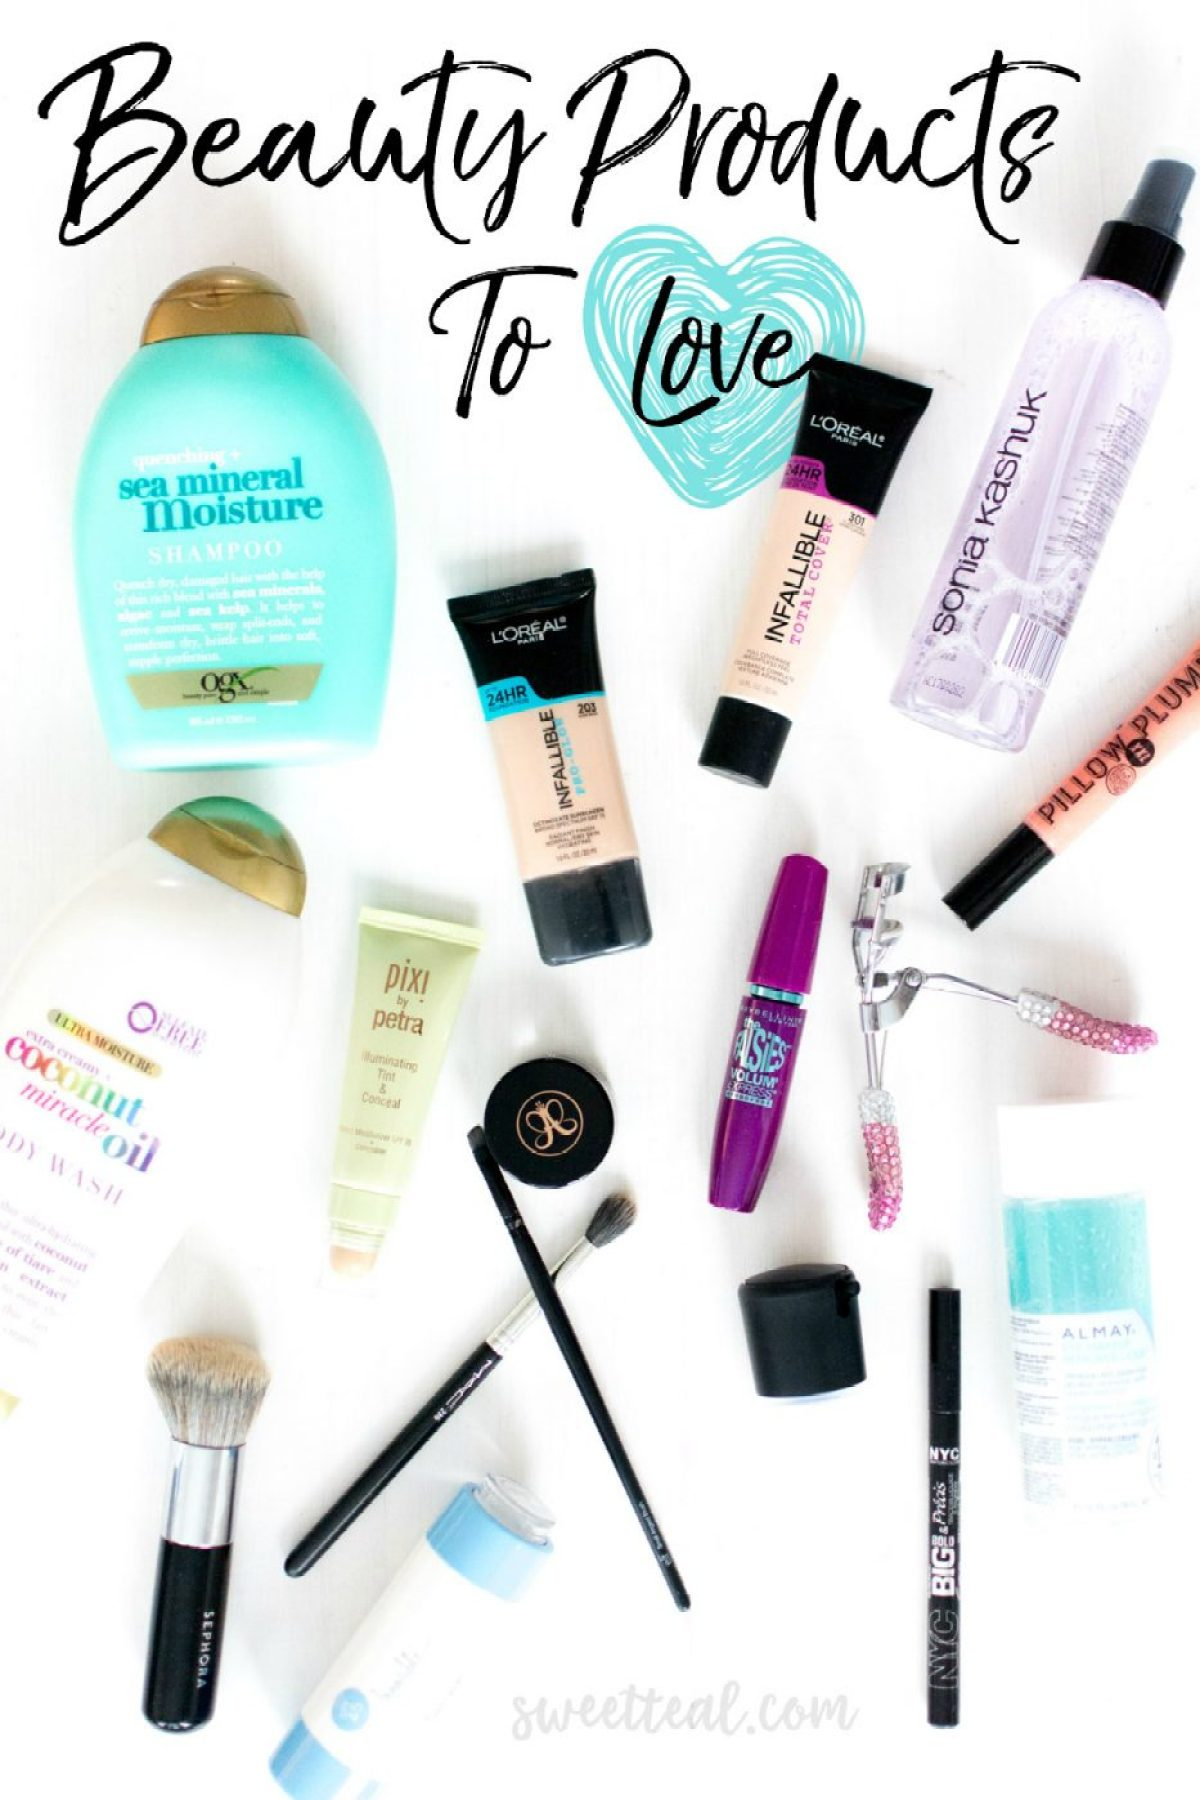 Beauty Products To Love - Sweet Teal